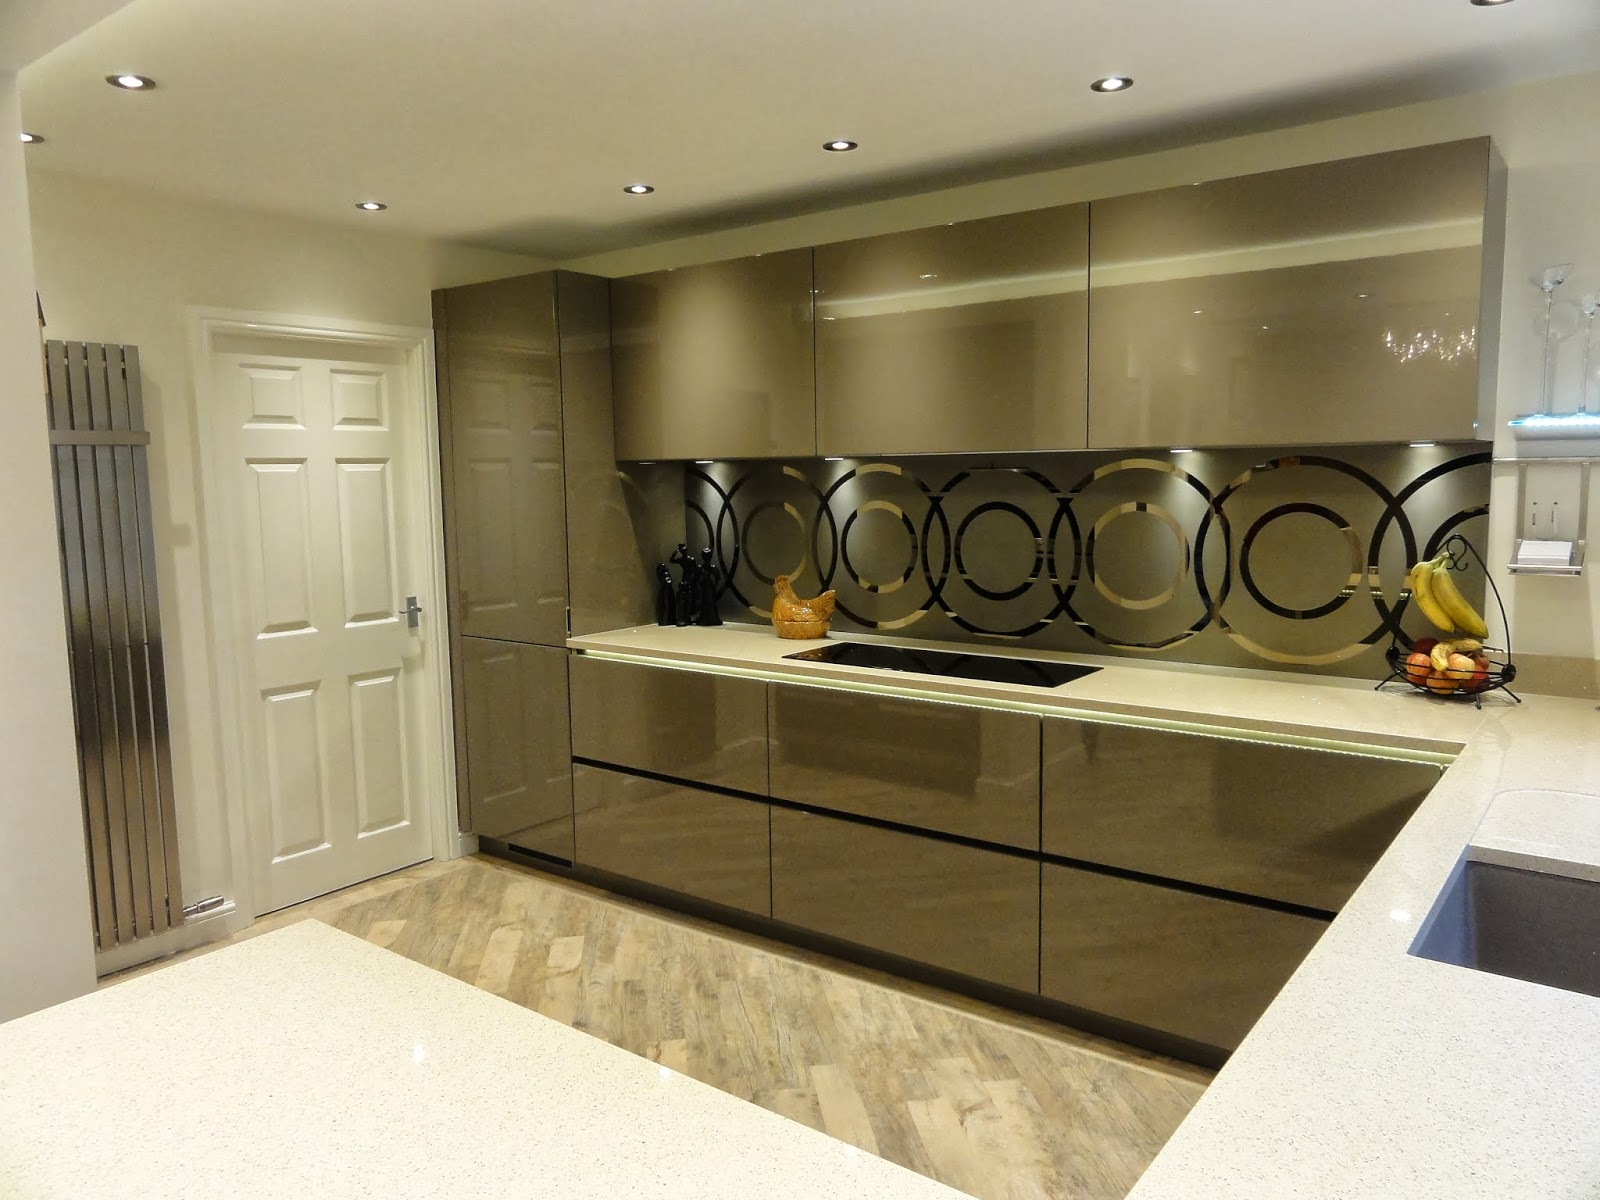 diane berry kitchens client kitchens mr mrs hampson beige grey lacquered kitchen. Black Bedroom Furniture Sets. Home Design Ideas